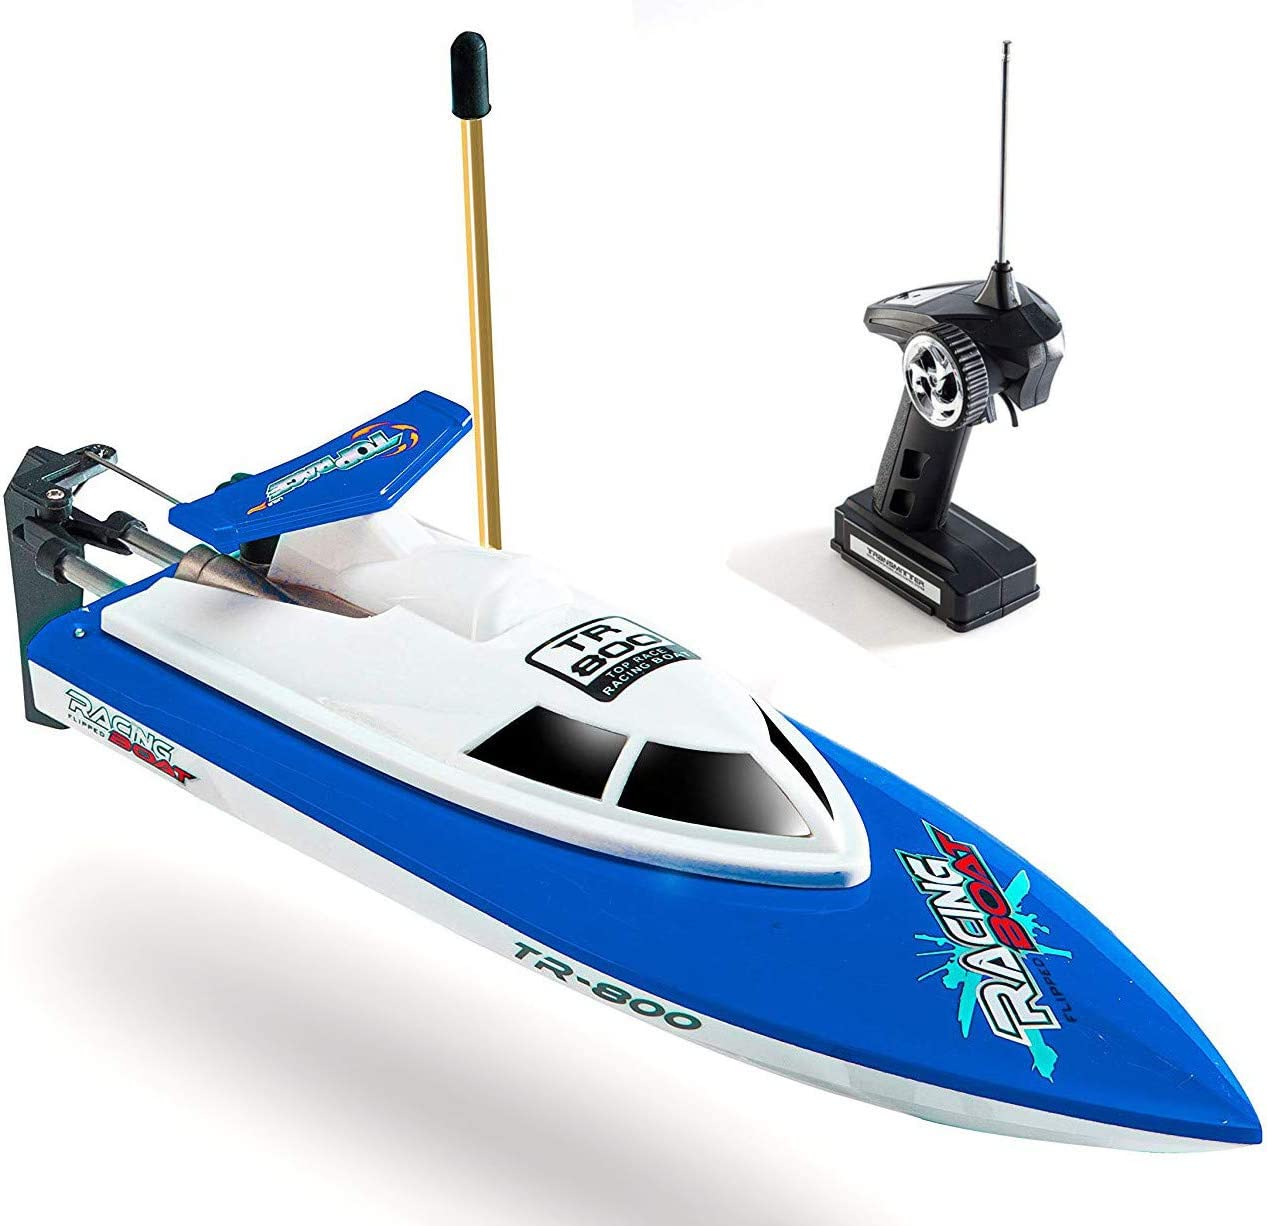 Top 5 Best RC Boat for Kids Reviews in 2020 4